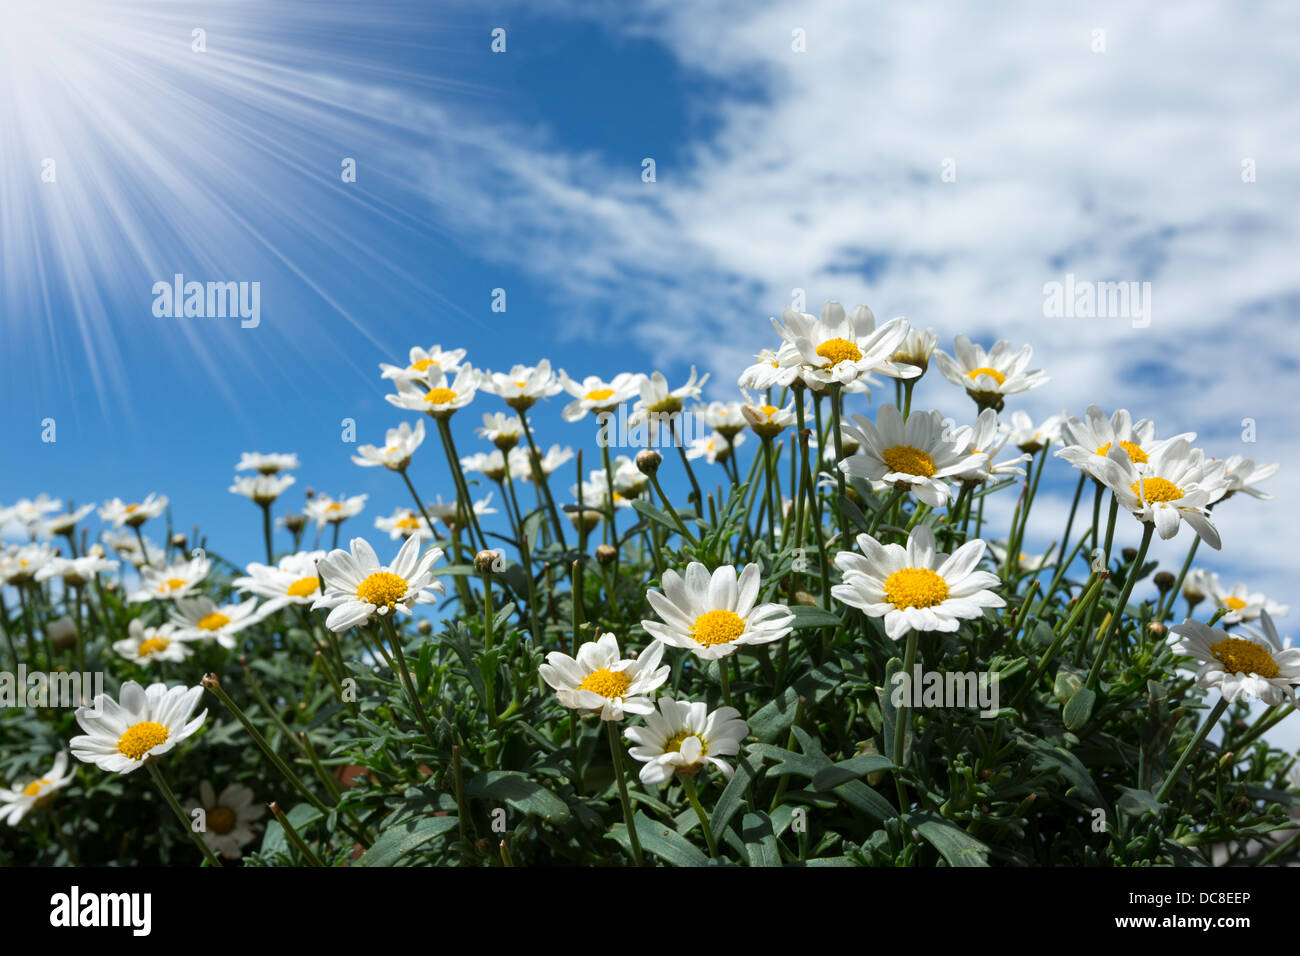 Bright white daisies against a summer sky. - Stock Image